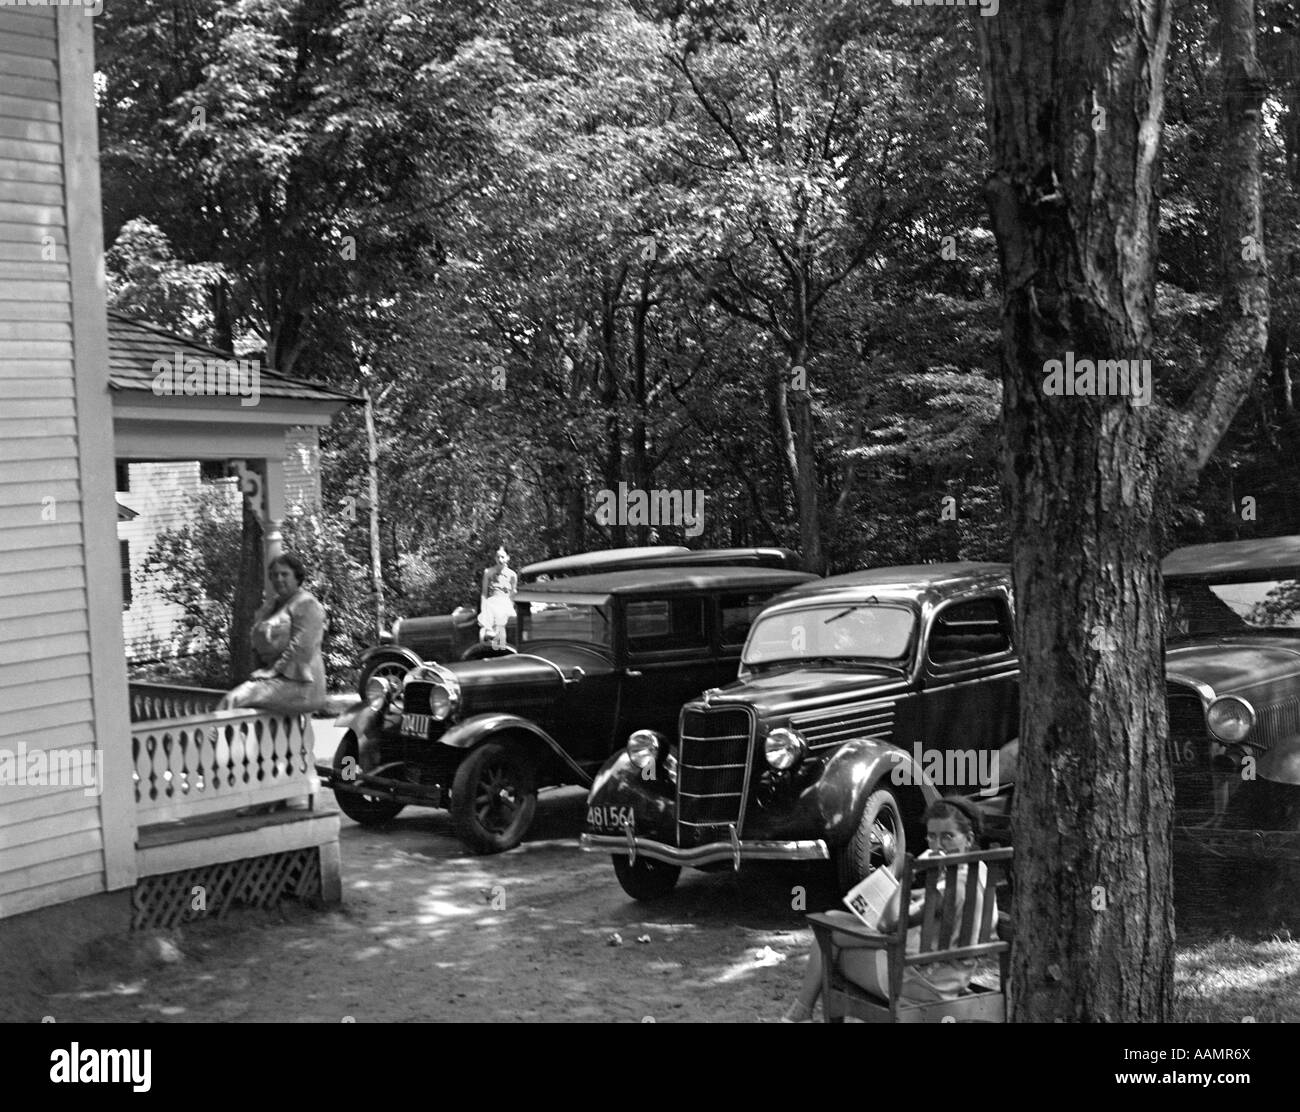 1930s CARS PARKED FRONT YARD WOMAN ON PORCH BENCH LAZY SUMMER RESORT CABIN COTTAGE NEW HAMPSHIRE USA - Stock Image